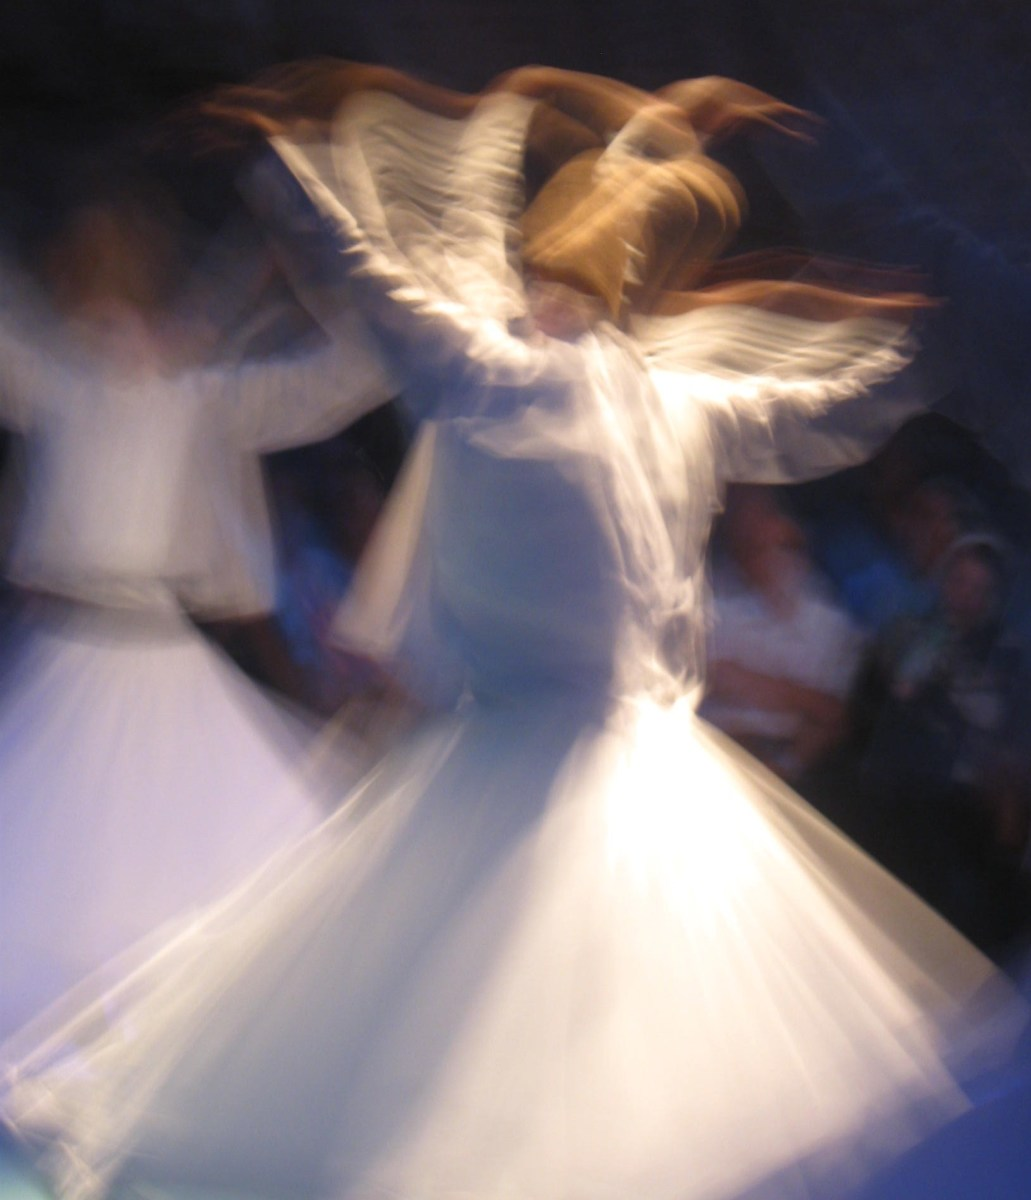 Turkish Whirling Dervishes dance the Sema, a sacred prayer-trance that induces religious ecstasy